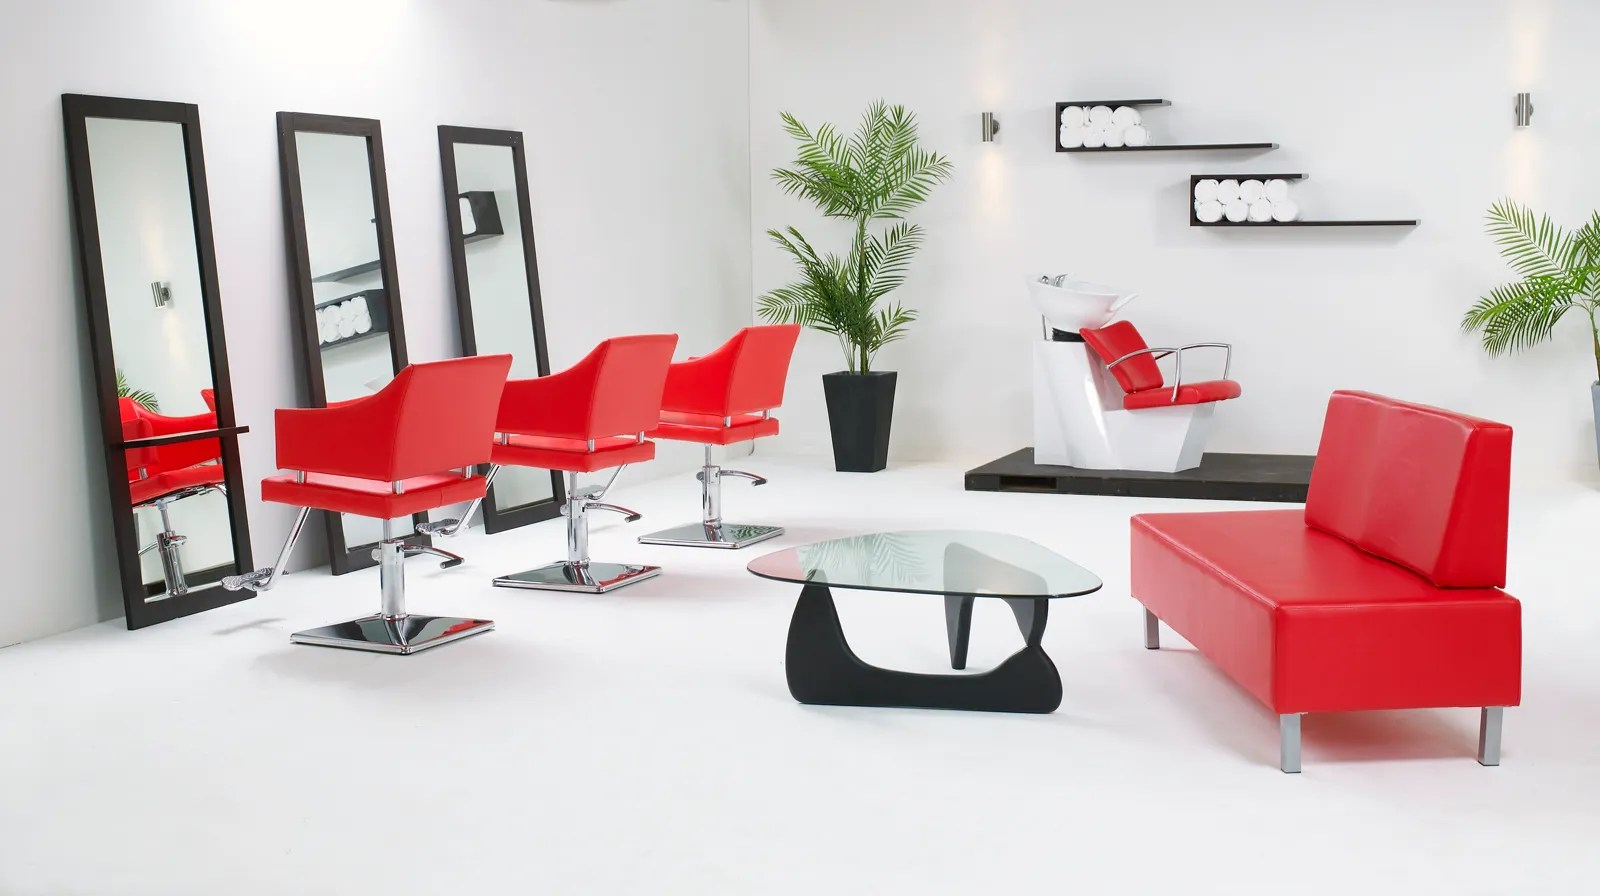 backwash chairs uk cost to reupholster wingback chair salon and packages make shopping easier for you. – living it up